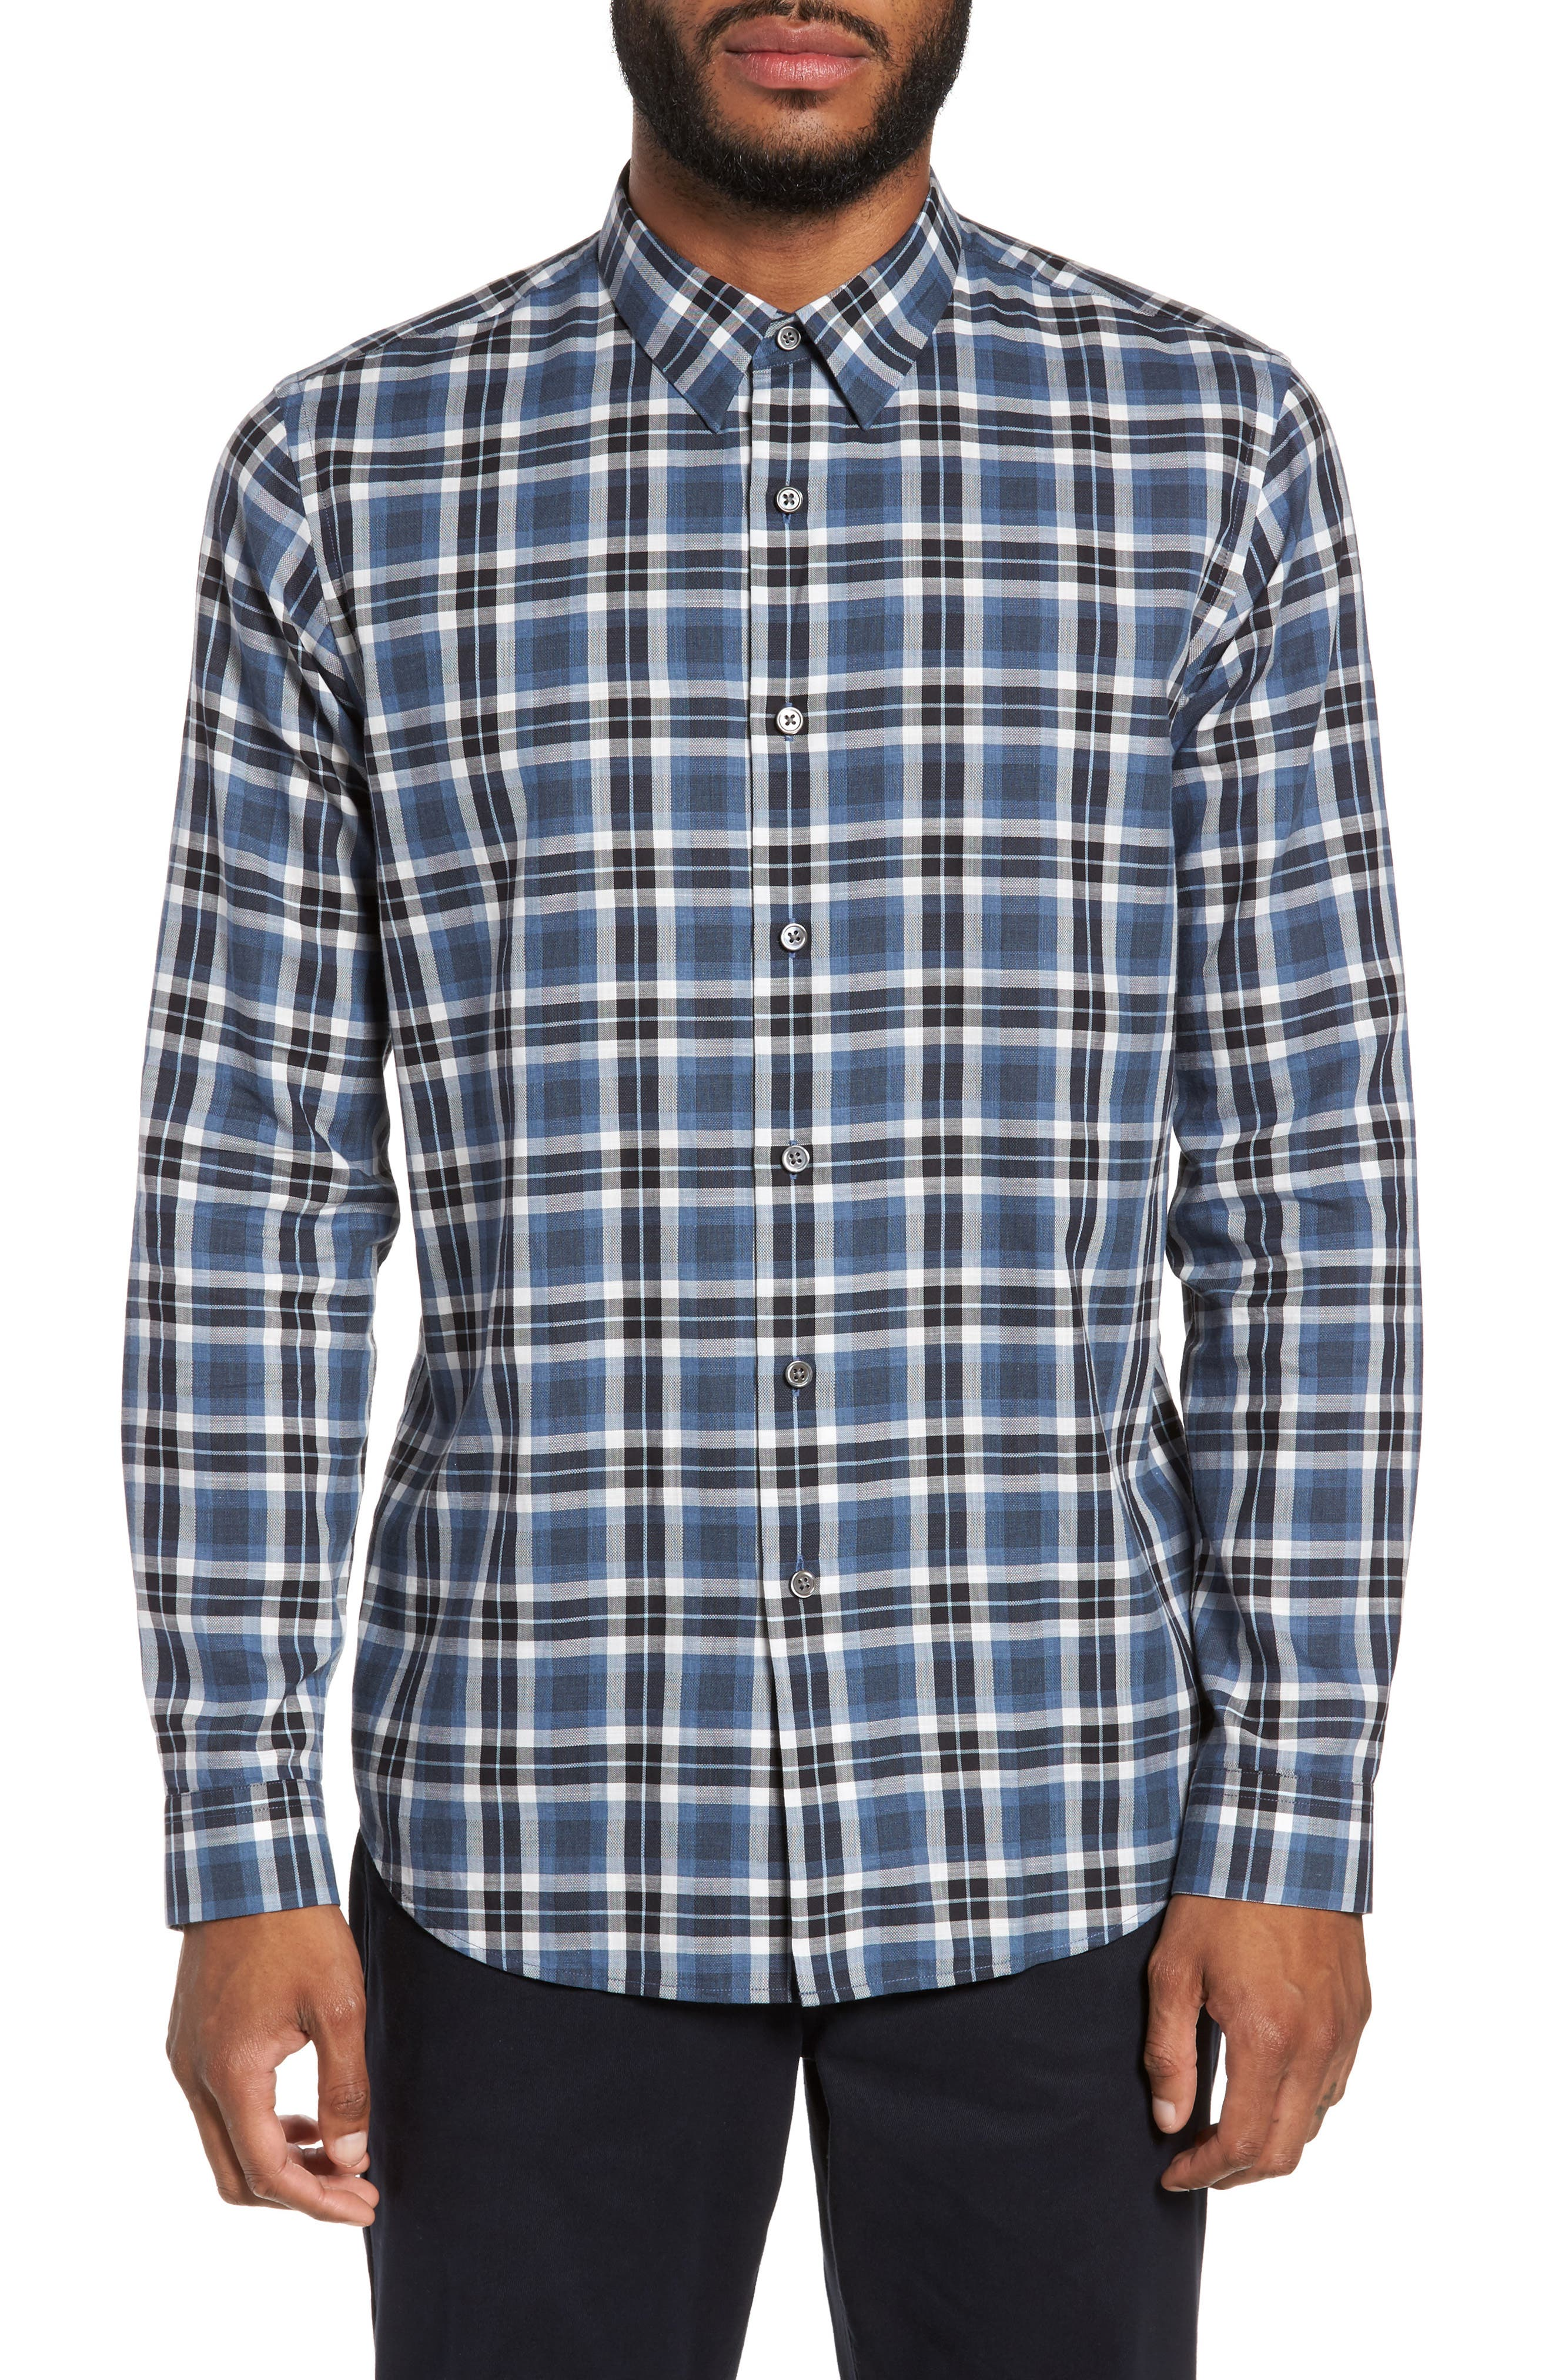 Trim Fit Plaid Flannel Shirt,                             Main thumbnail 1, color,                             413